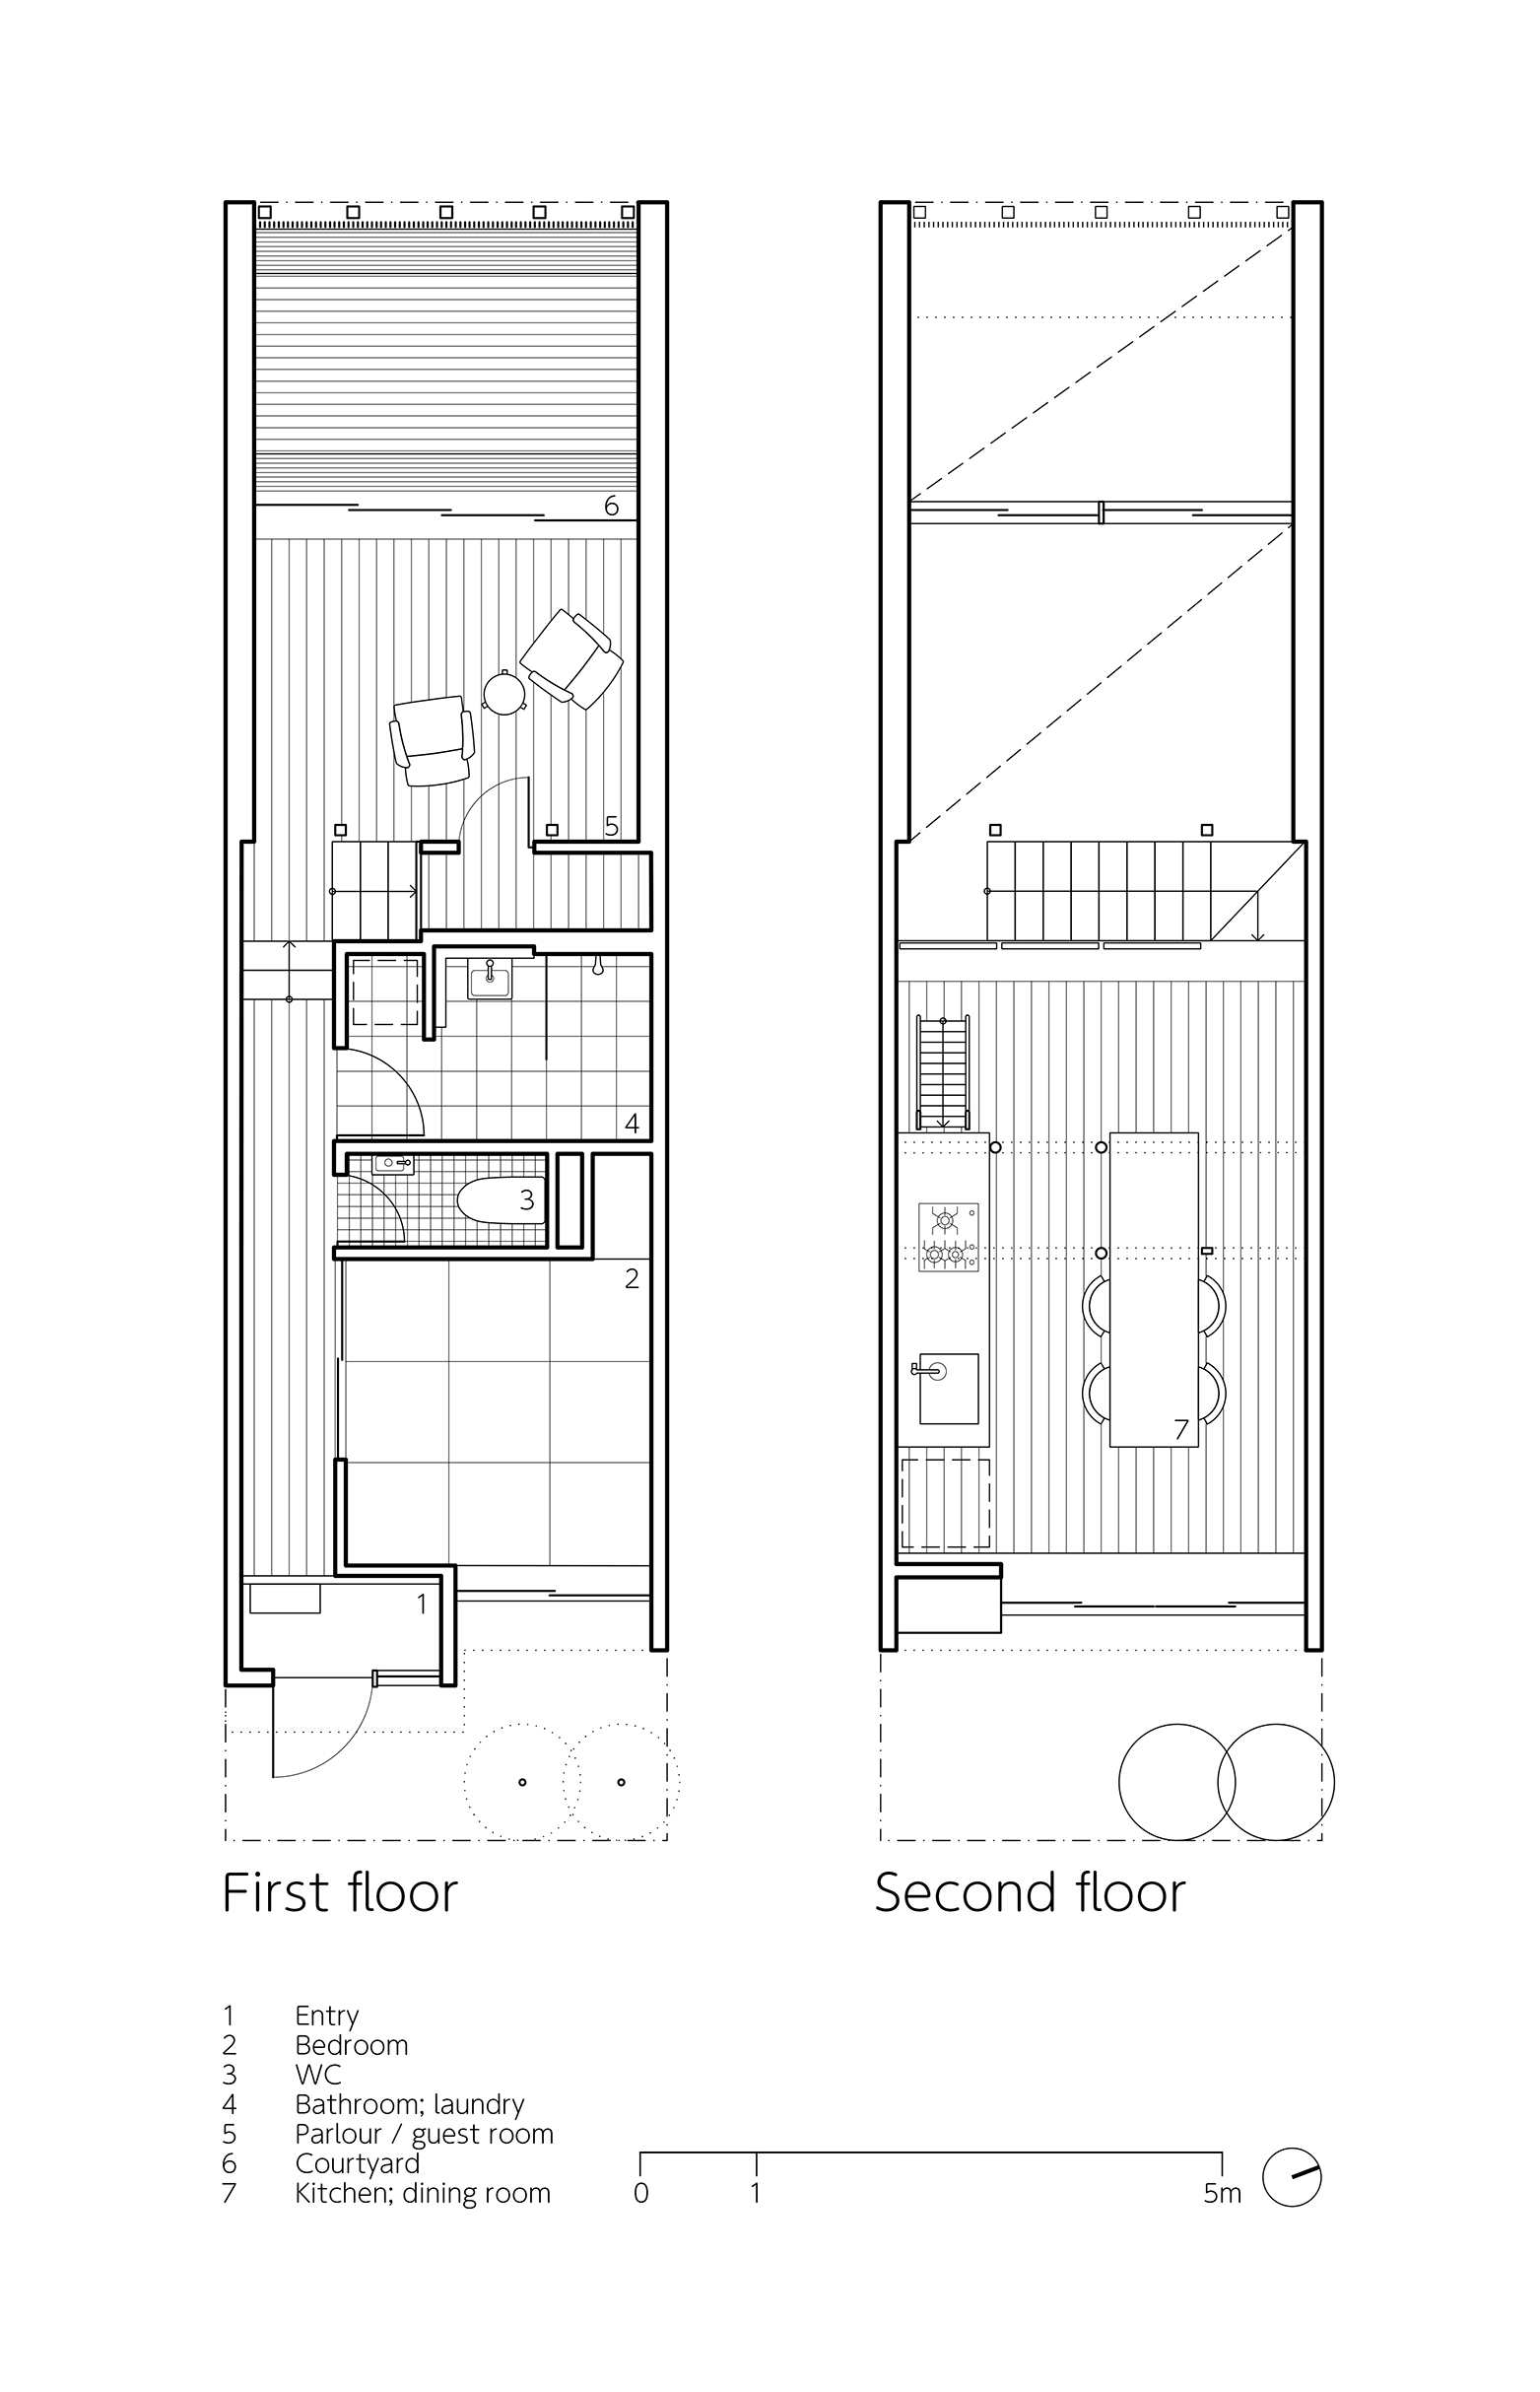 Project in addition 52afc057e8e44e1c91000054 Flower House Ezzo Floor Plans in addition Casa Moderna De 3 Dormitorios Plano Planta Alta moreover 59d36a90b22e38e53e0001b3 Ichijoji House Atelier Luke Floor Plans together with Elevation Sketch. on about the house plans